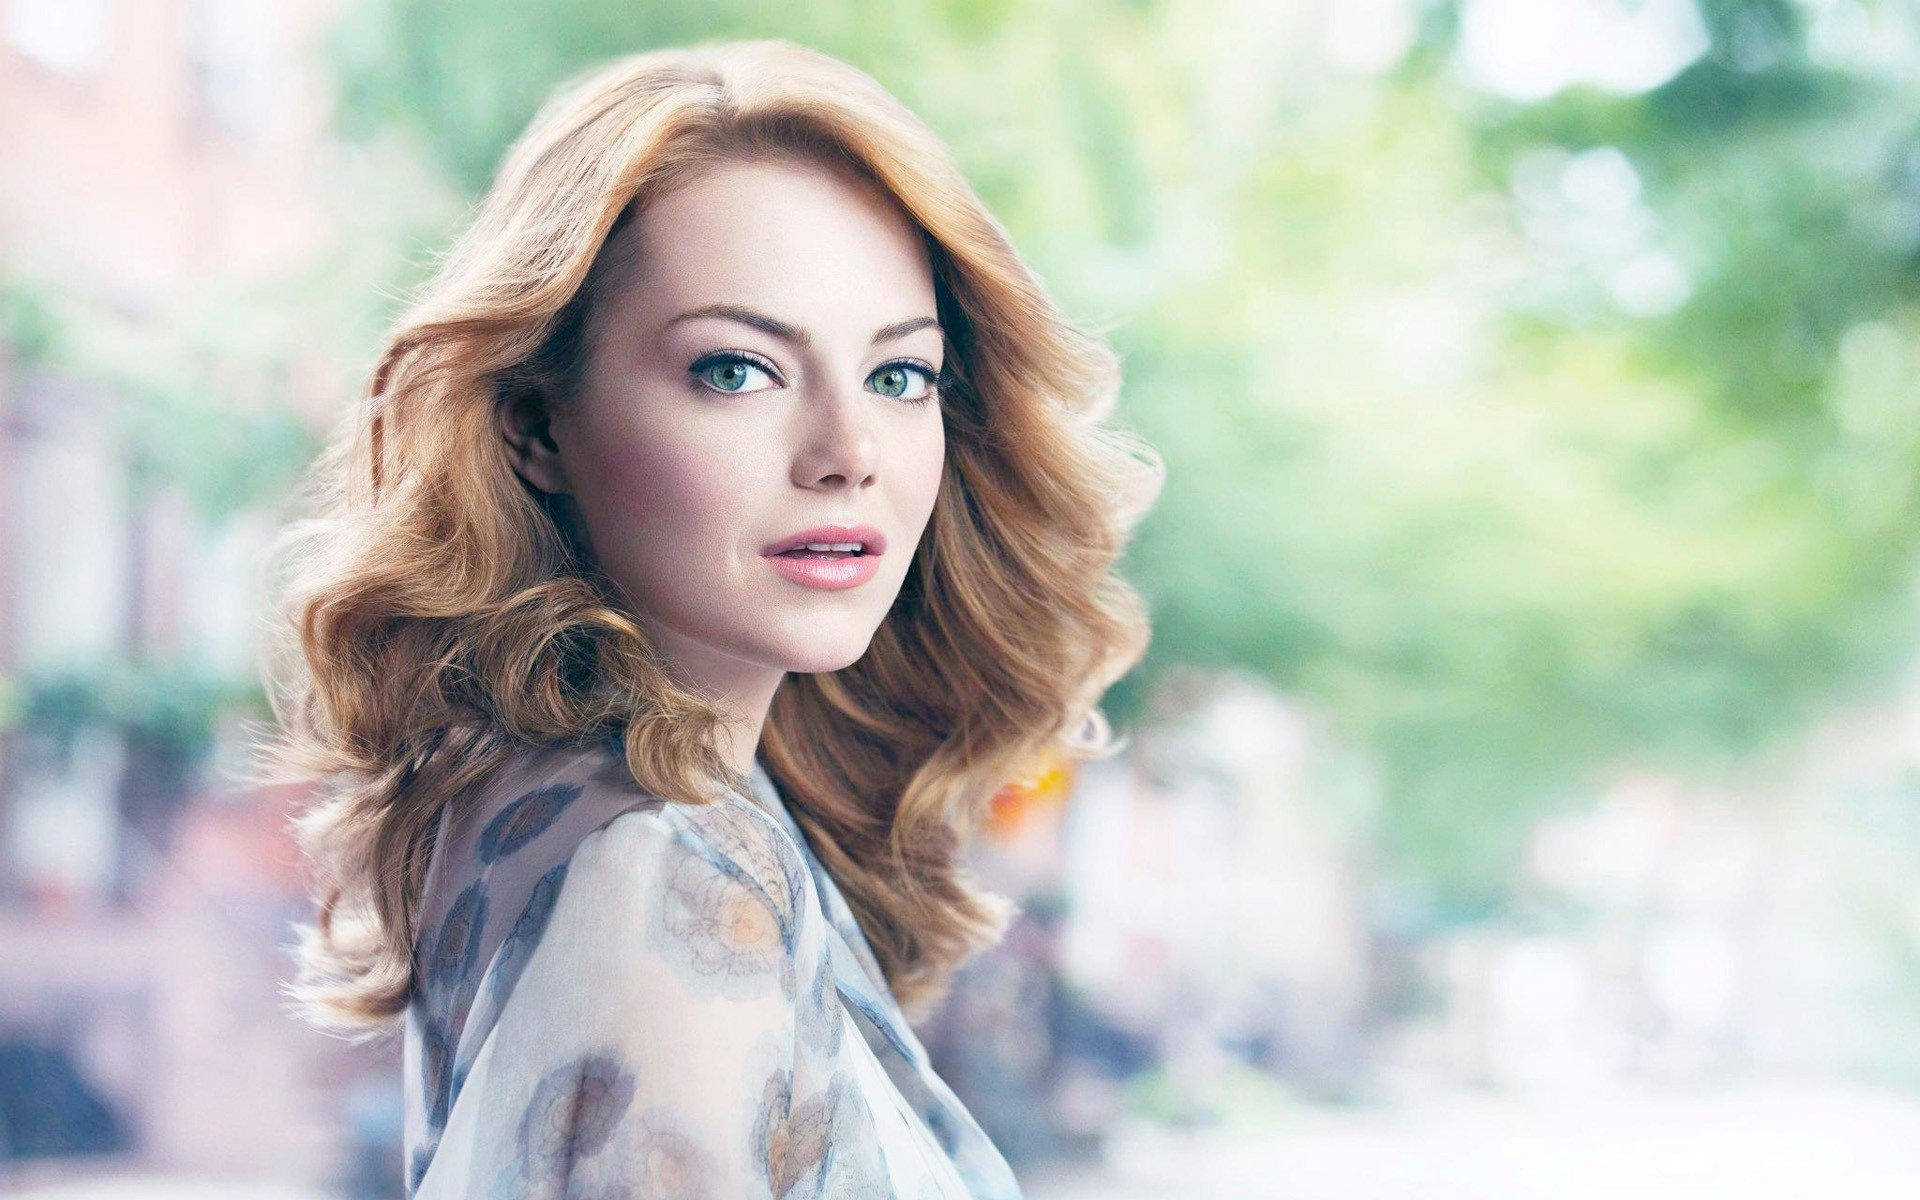 1920x1200 - Emma Stone Wallpapers 4